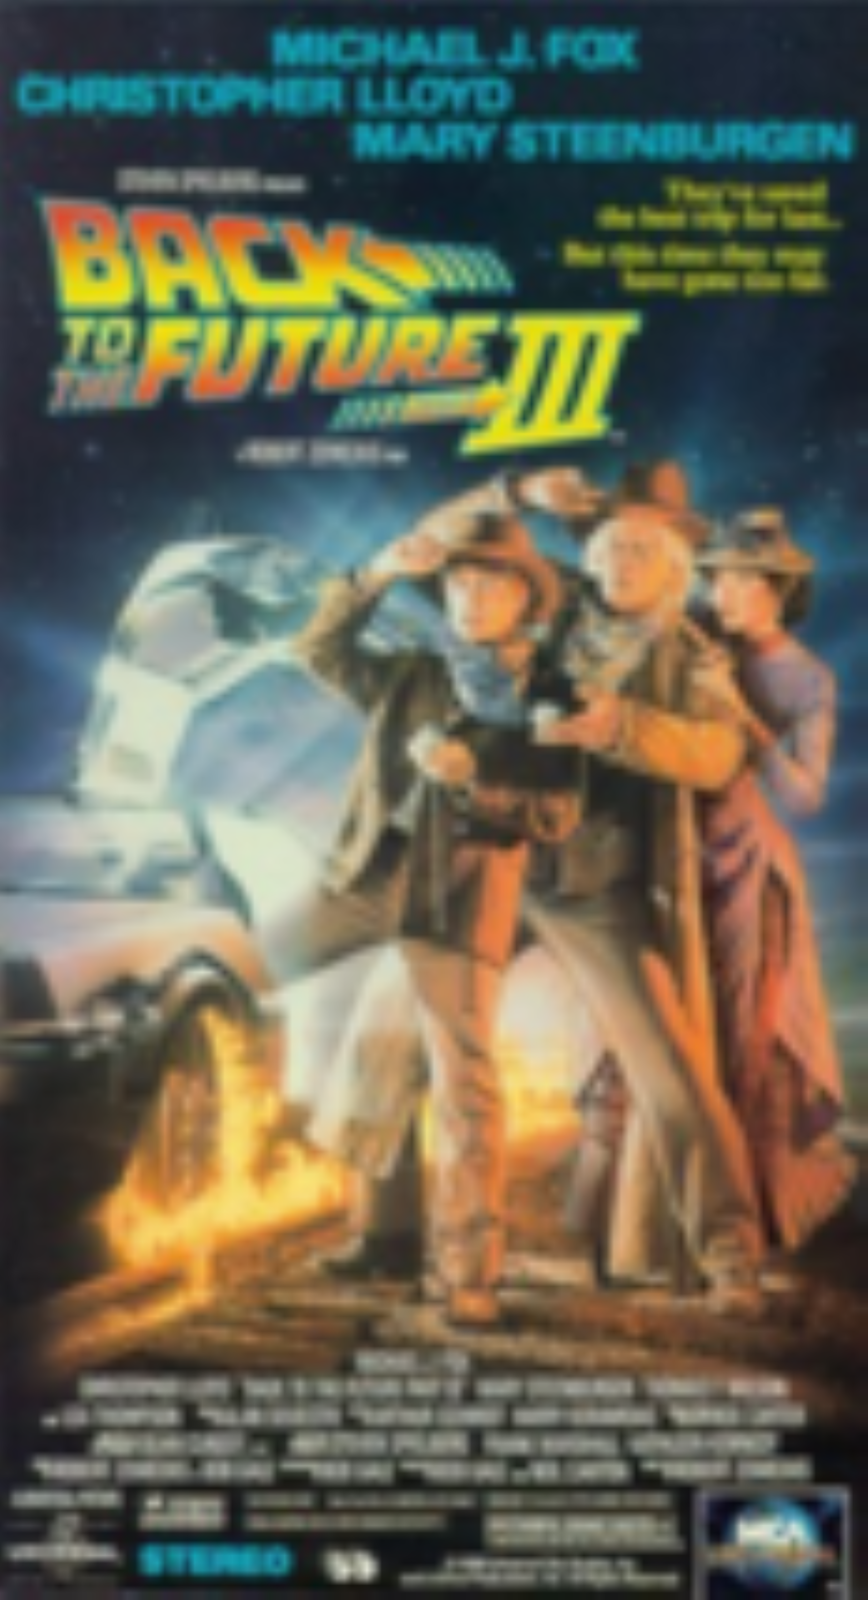 Back to the Future Part III Vhs